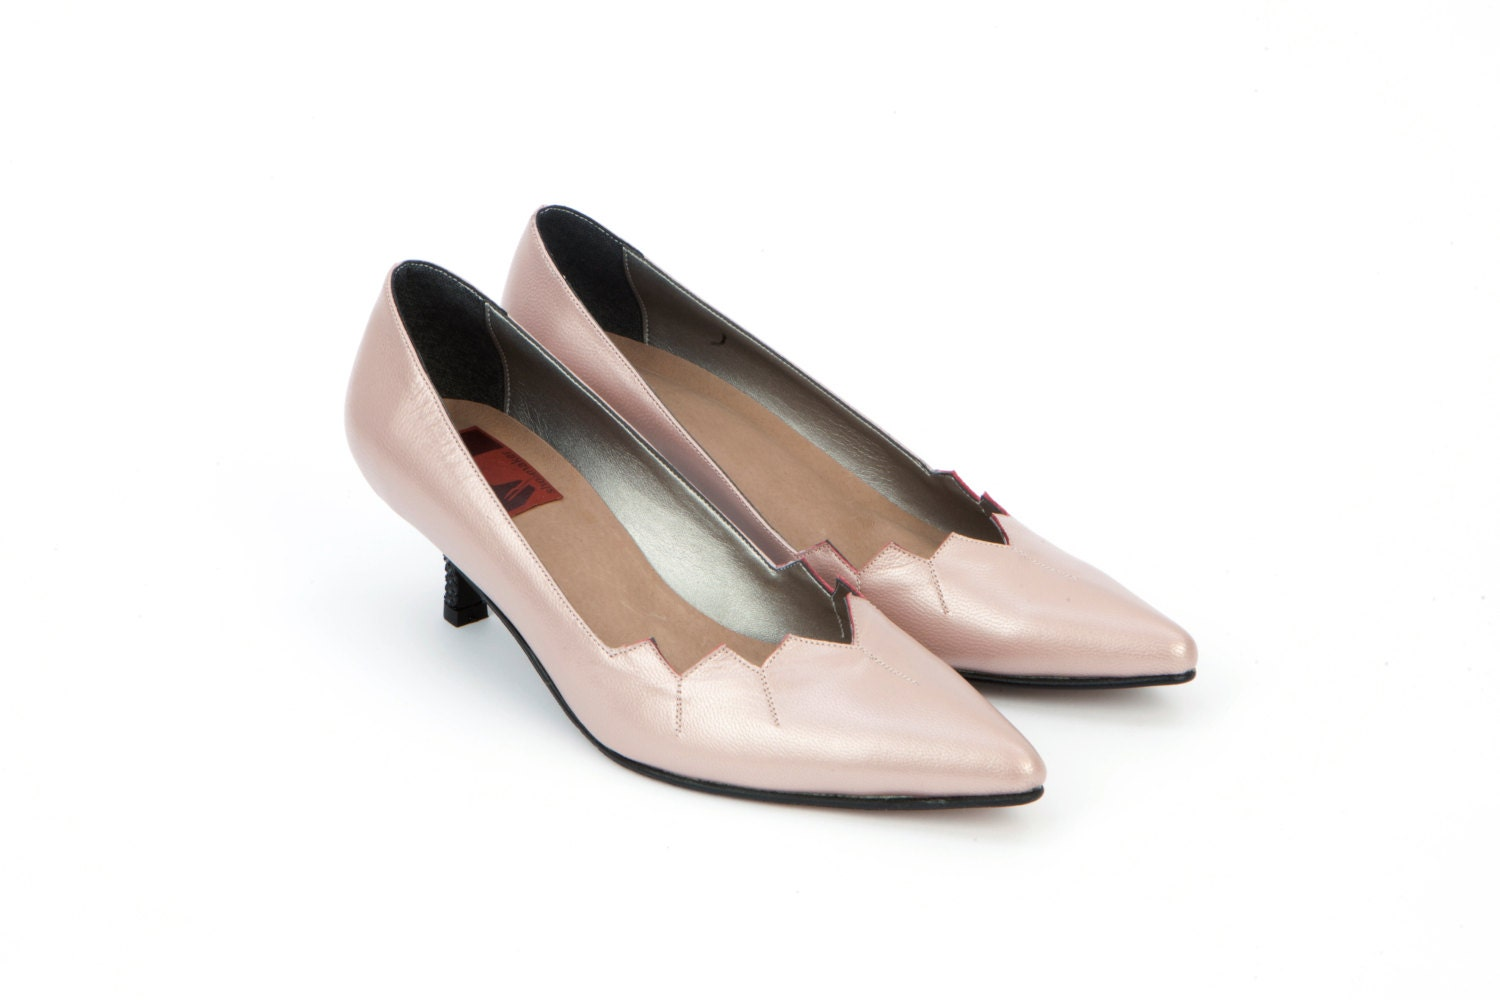 Womens Leather Shoes Grace Kelly Light Blush Pink Pumps Low